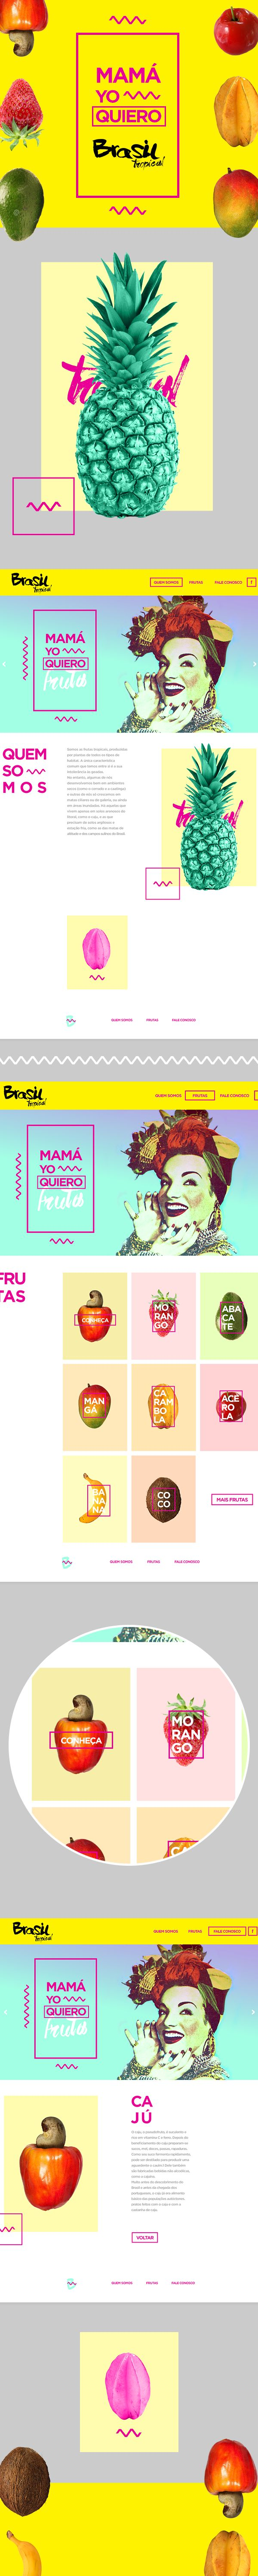 Brasil Tropical by Marco Leal, via Behance. Summer palette.